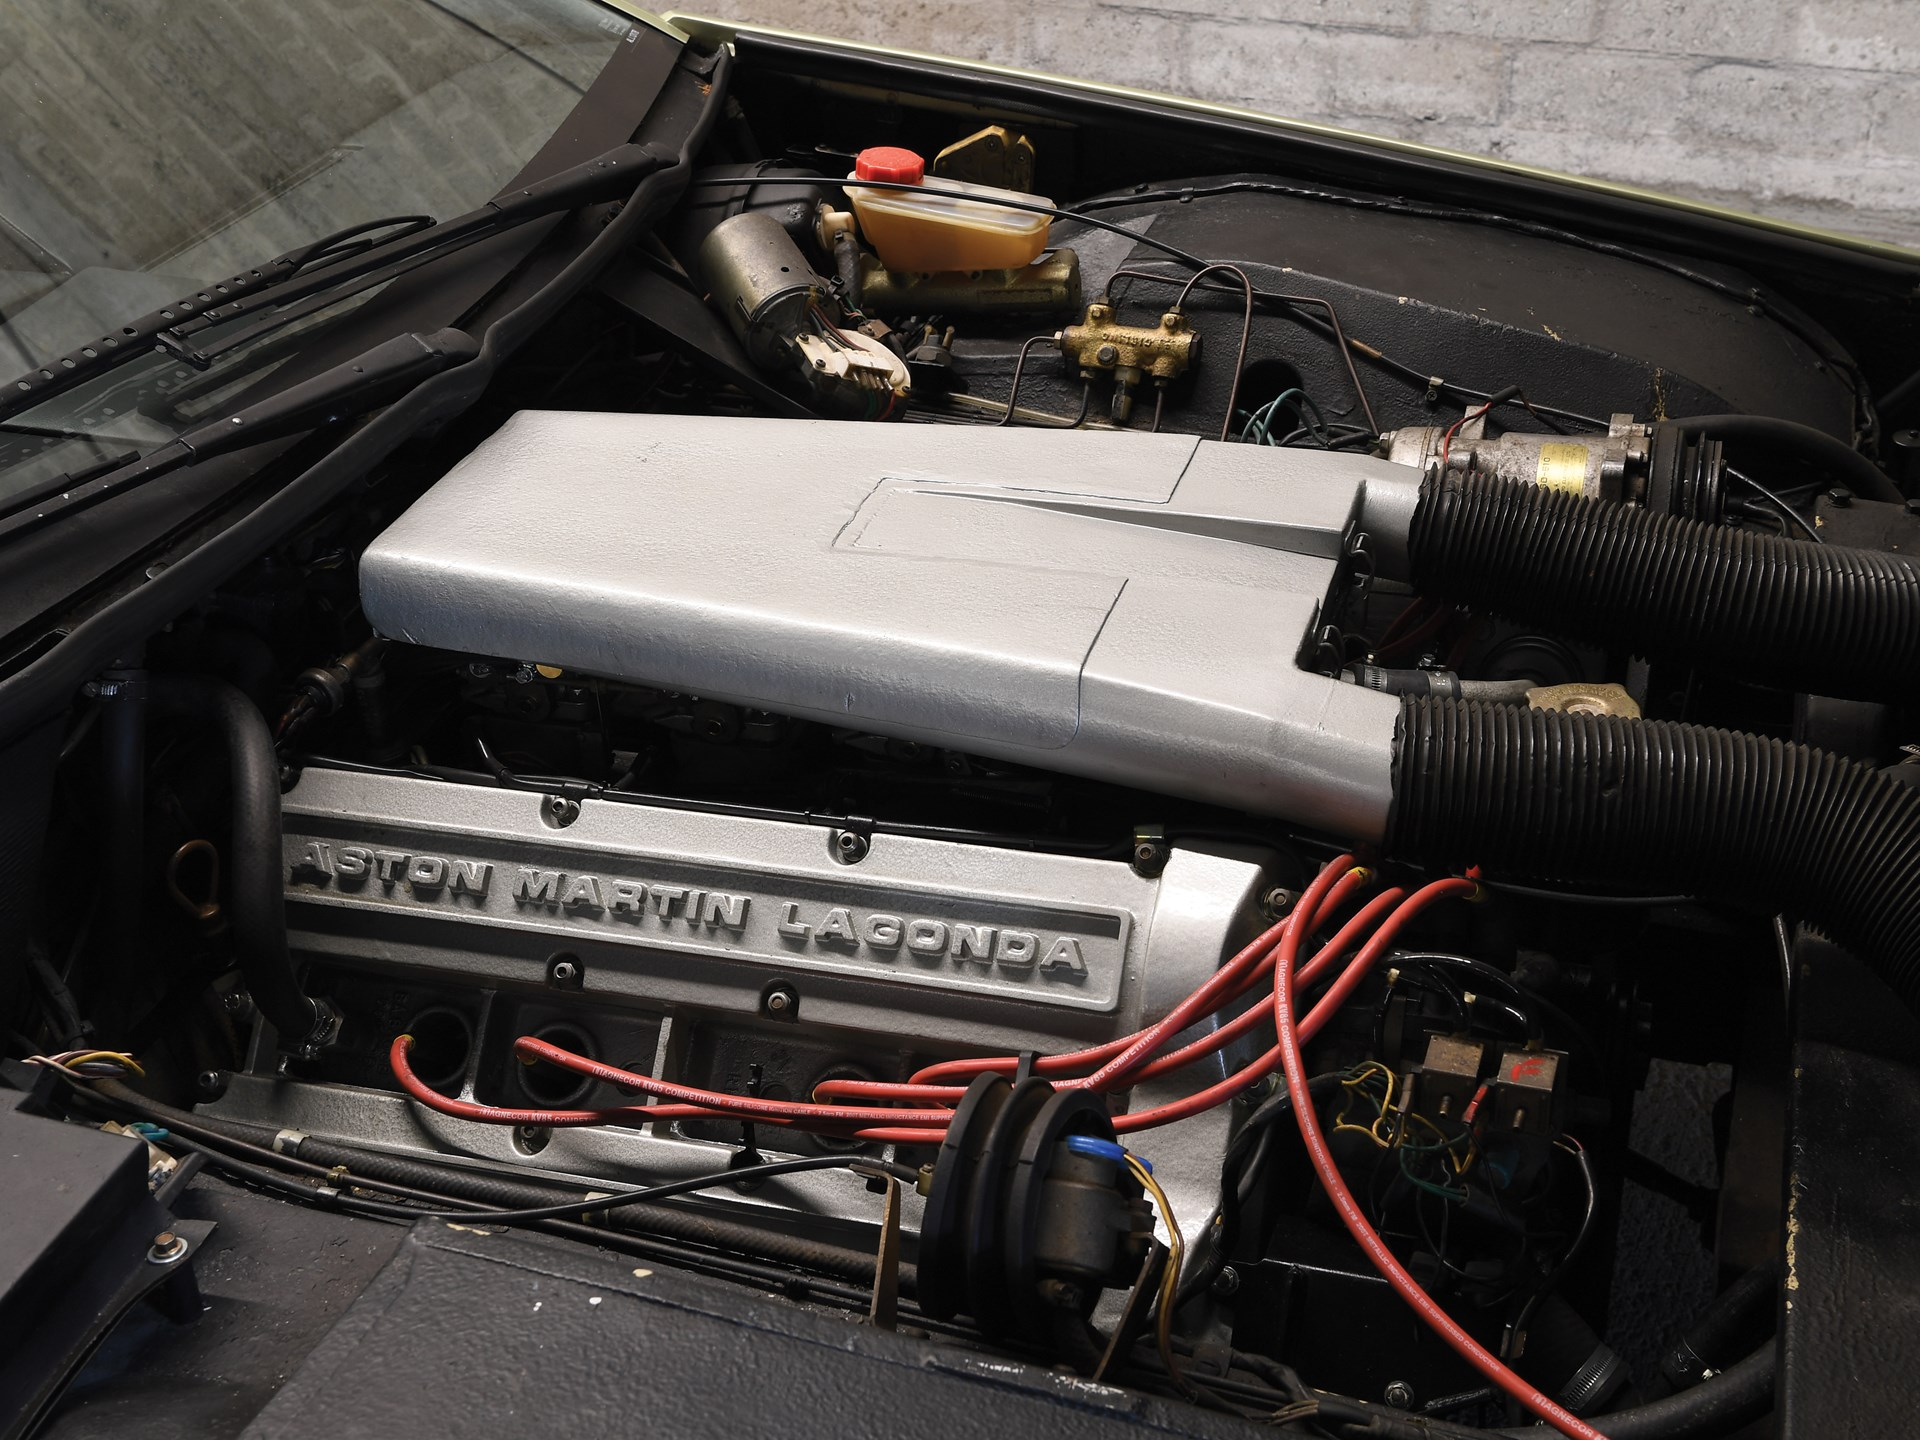 1983 Aston Martin Tickford Lagonda engine